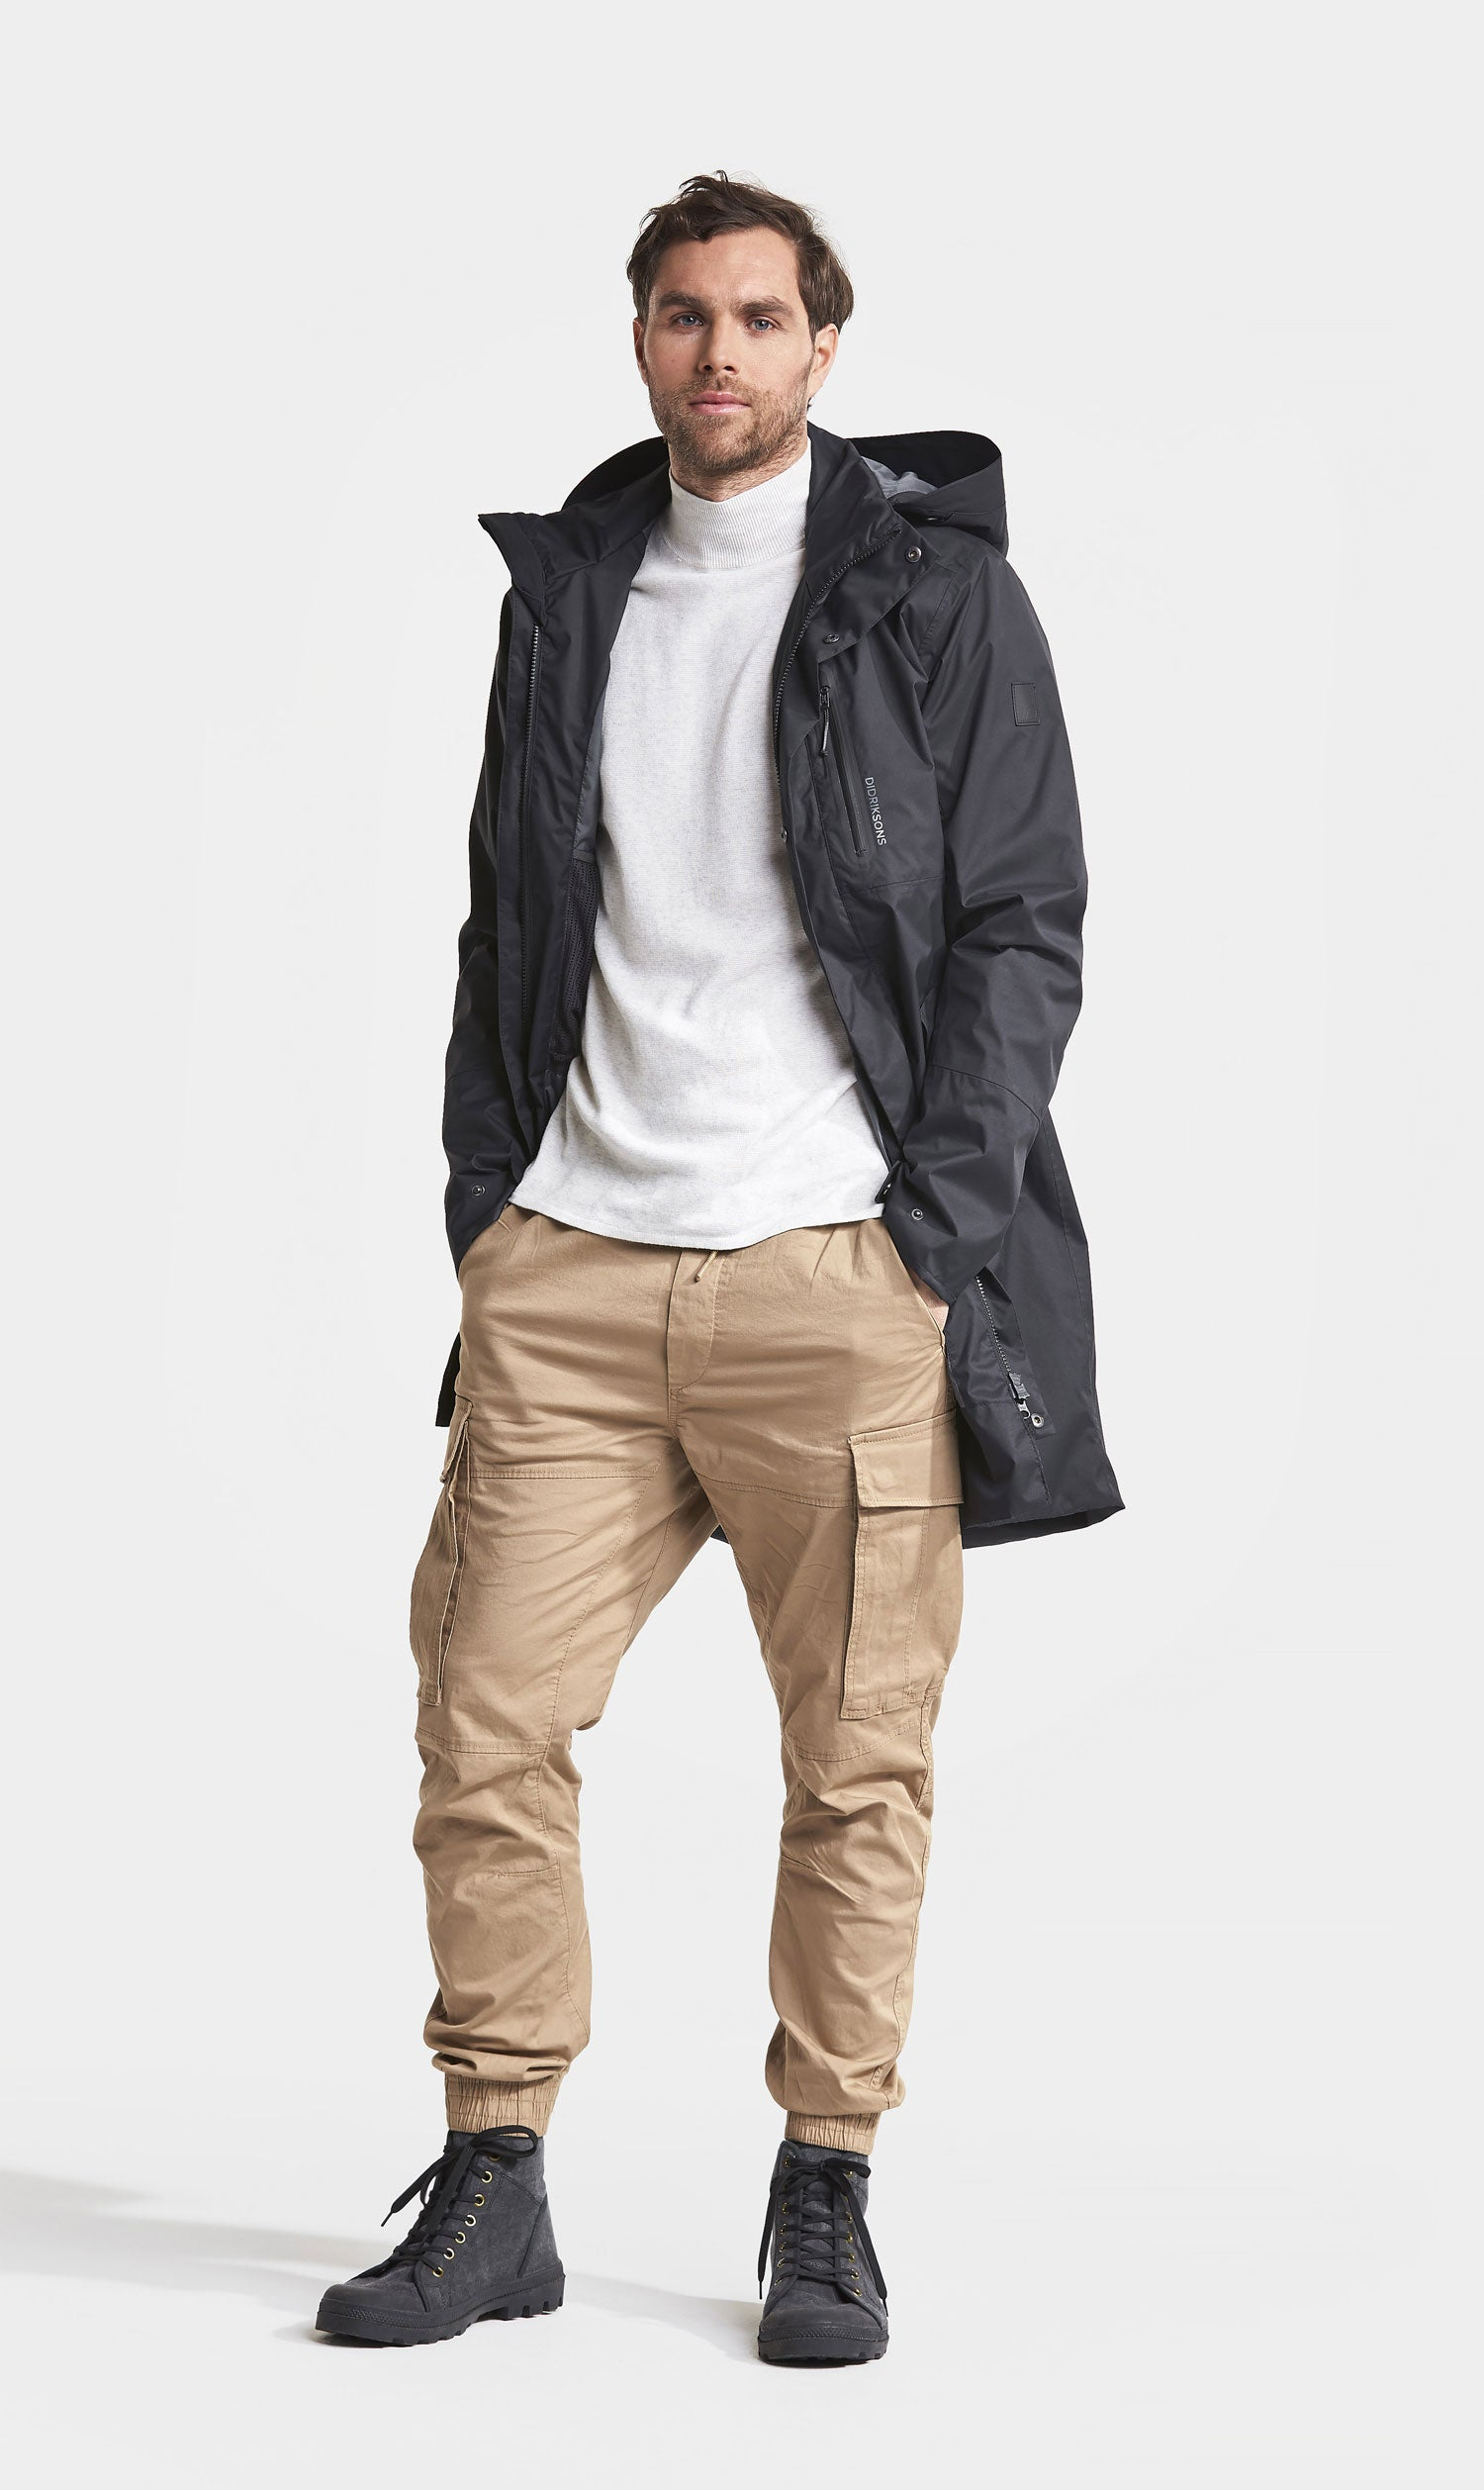 Didriksons Arnold Parka Coat worn by a man over a white sweater